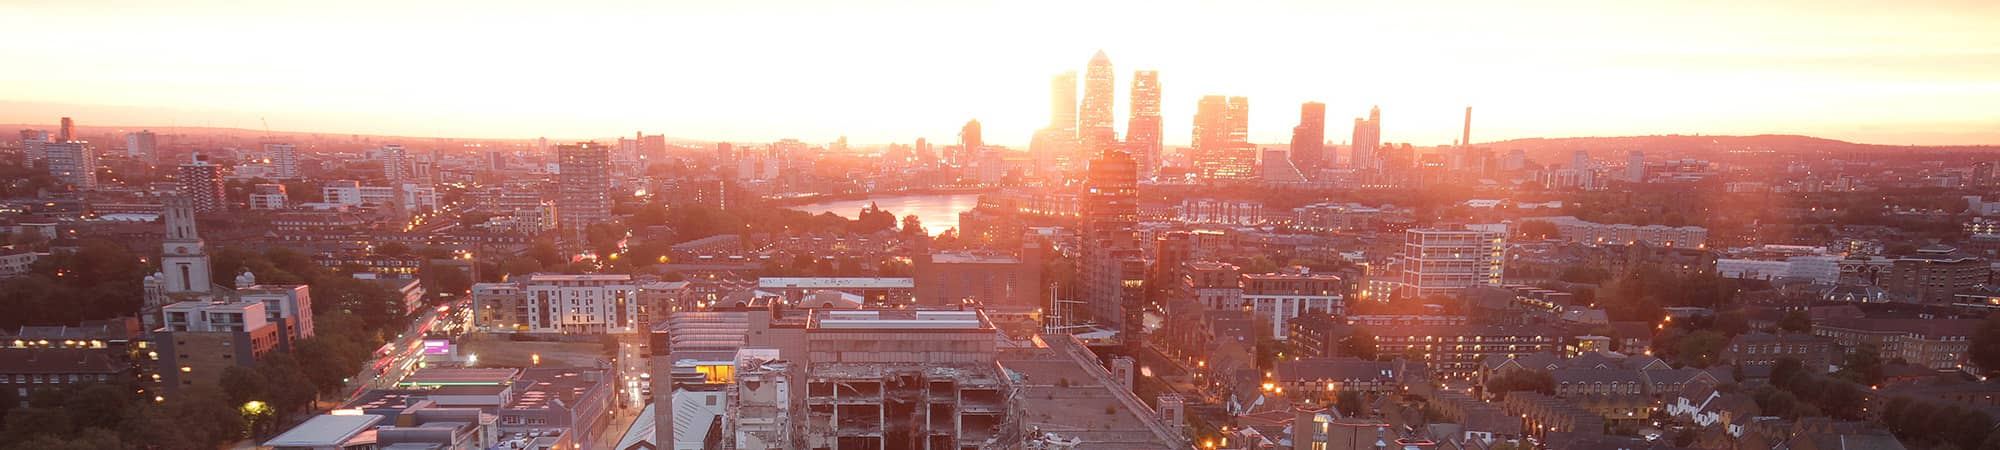 Sunrise over the City of London